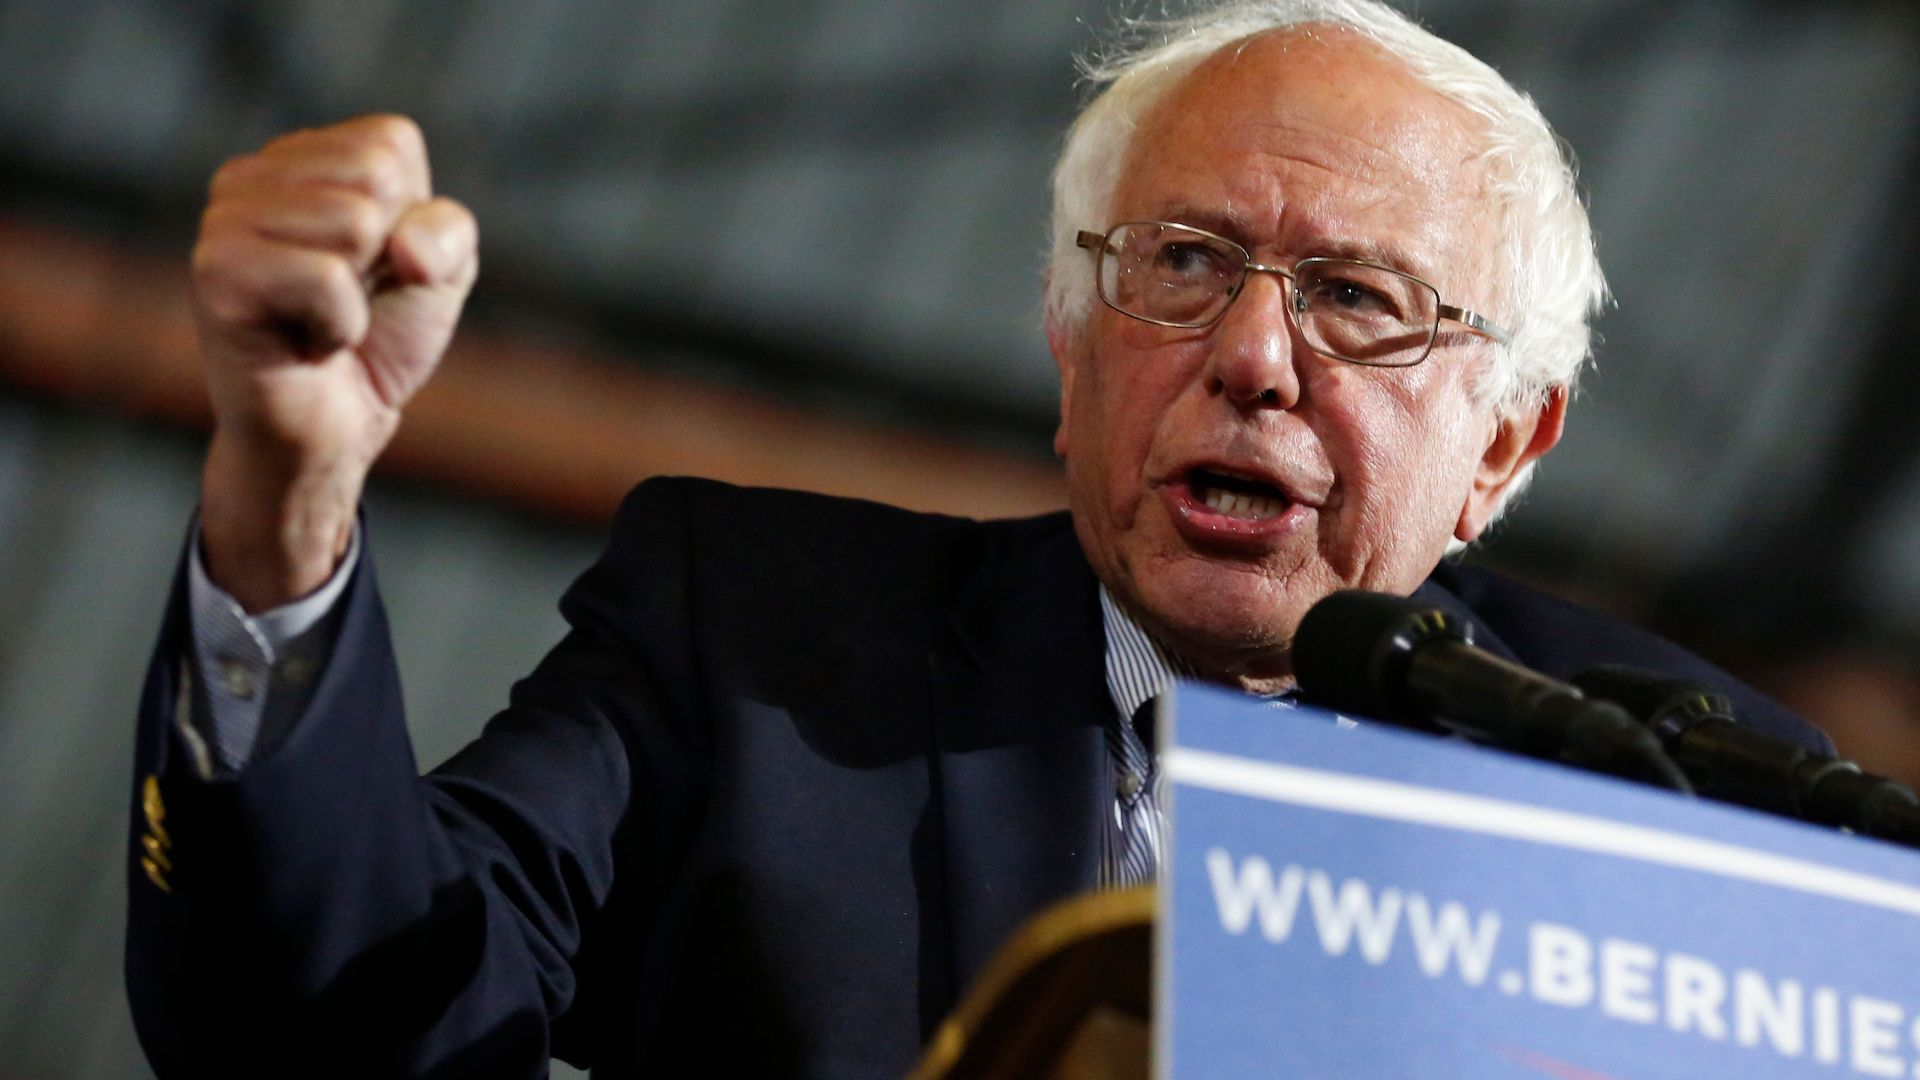 Sanders gets tough reception at minority women's event, signaling challenges ahead